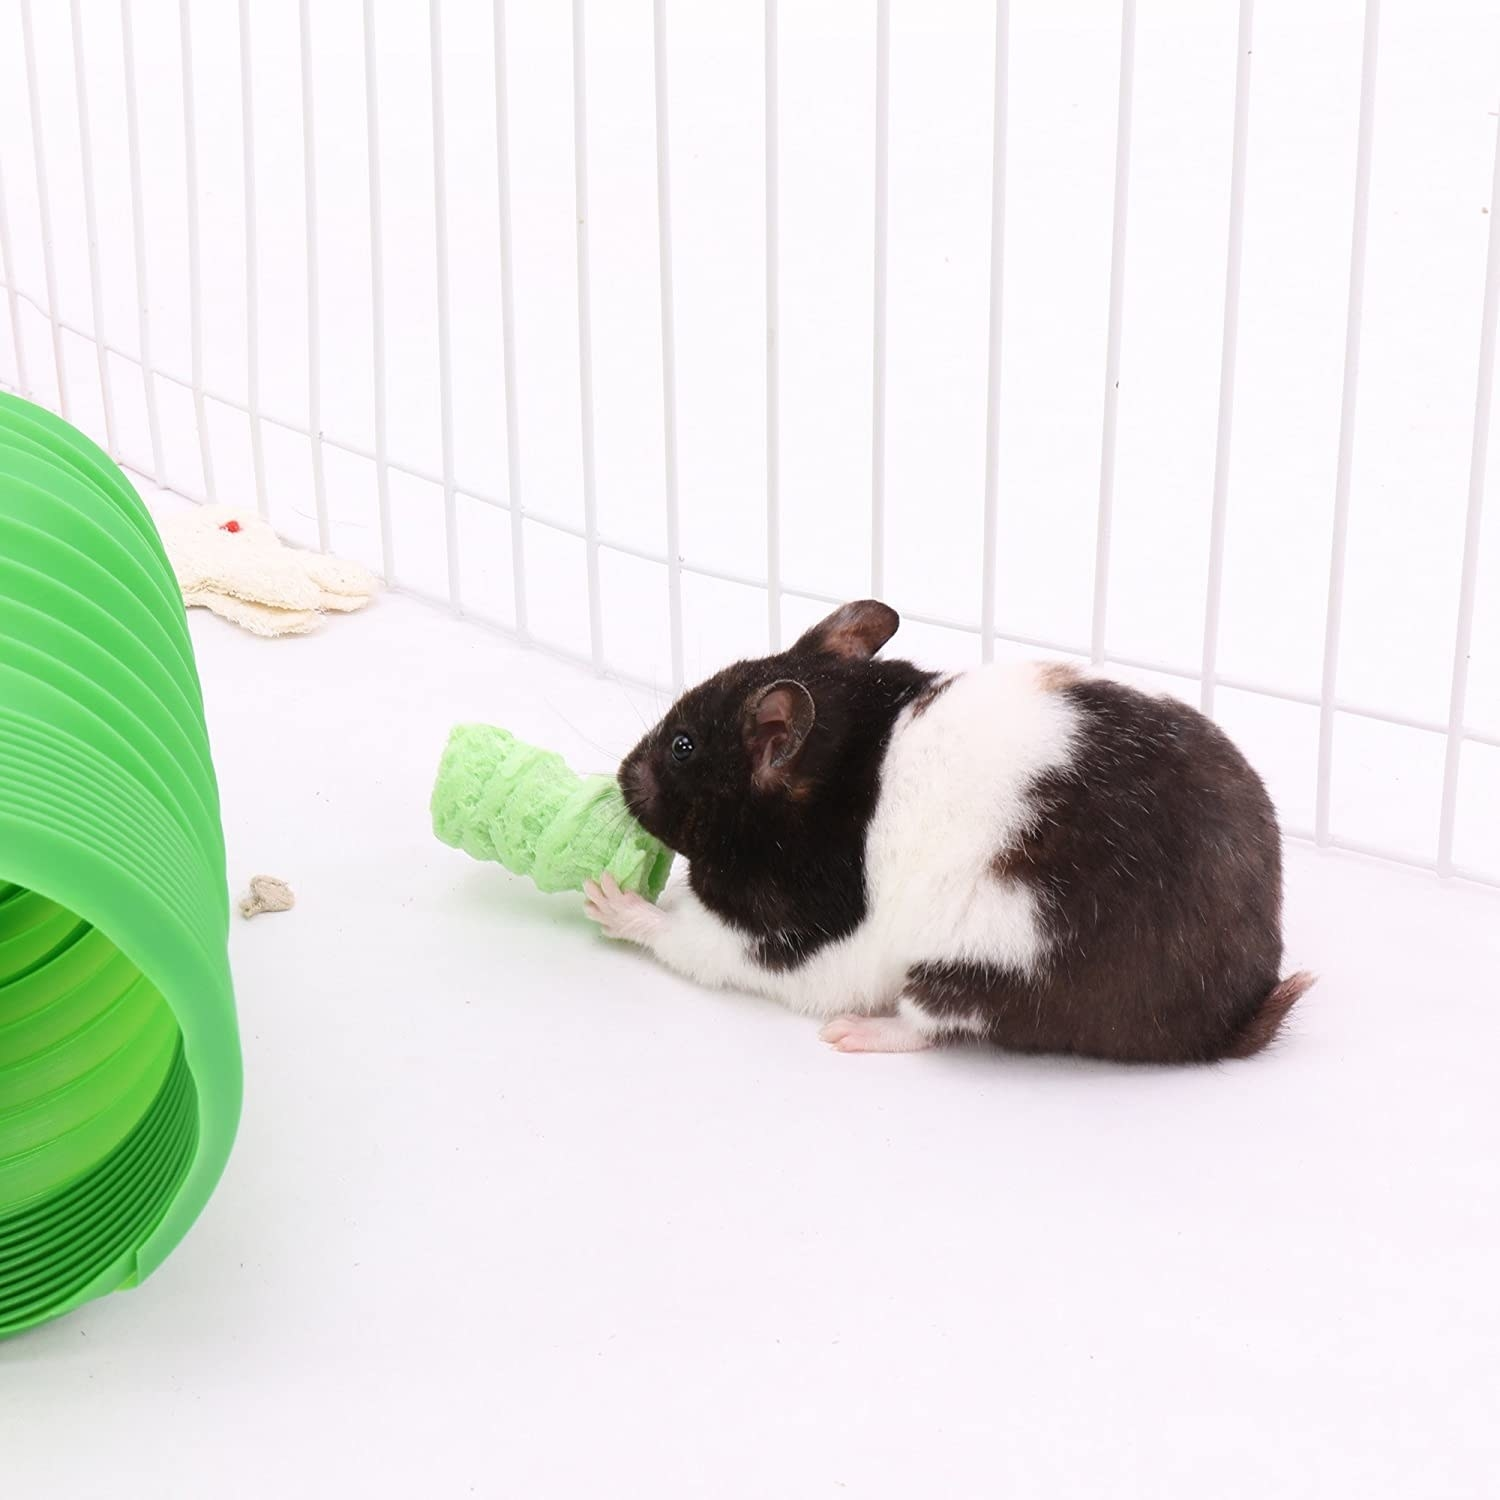 A black and white guinea pig snacks on a green treat